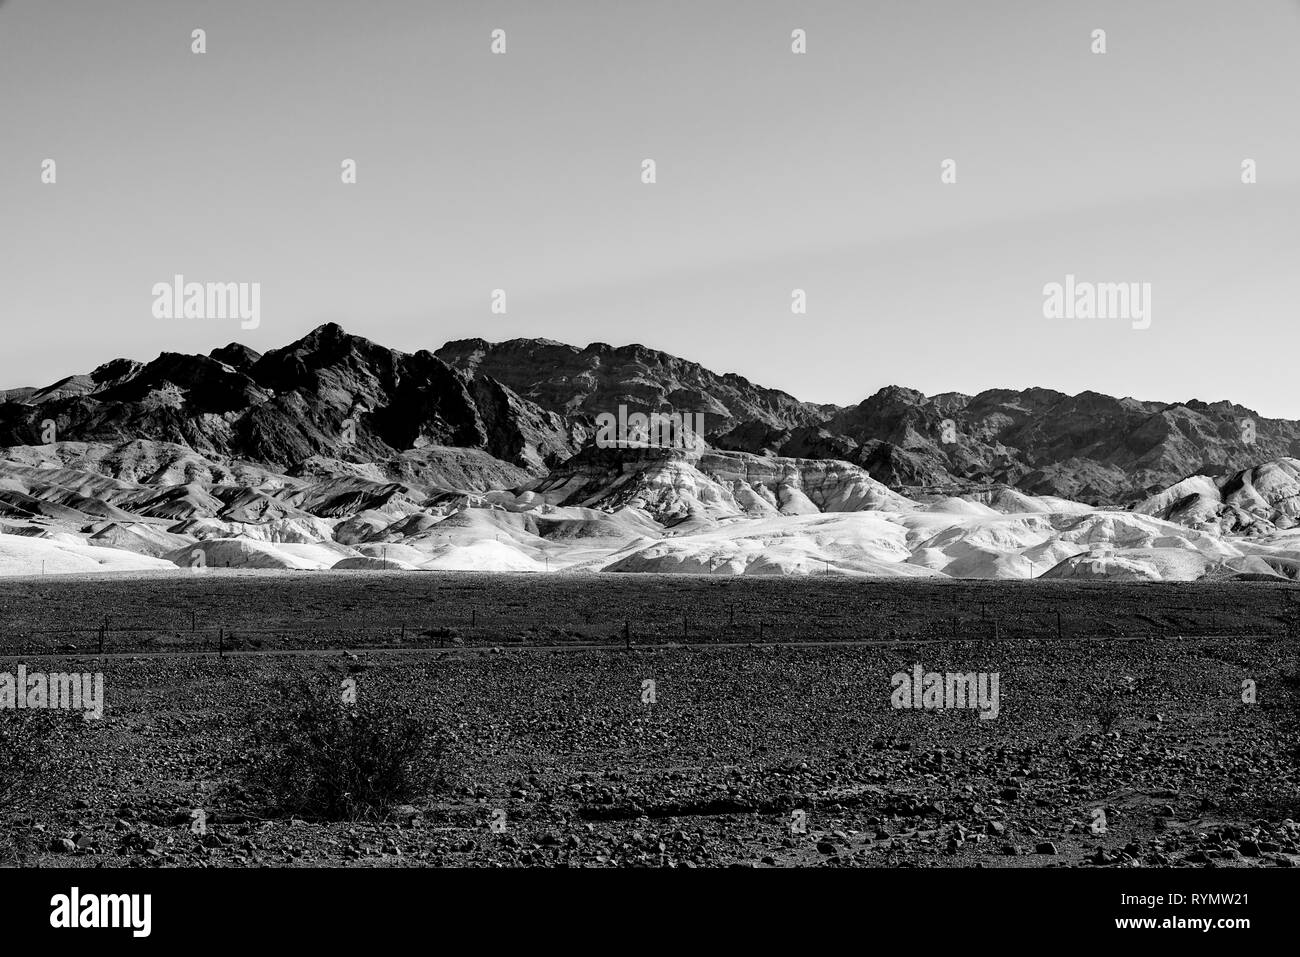 Black and white, Death Valley California with sparse vegetation, dark rocky fields gives way to white hills and barren desert mountains. - Stock Image